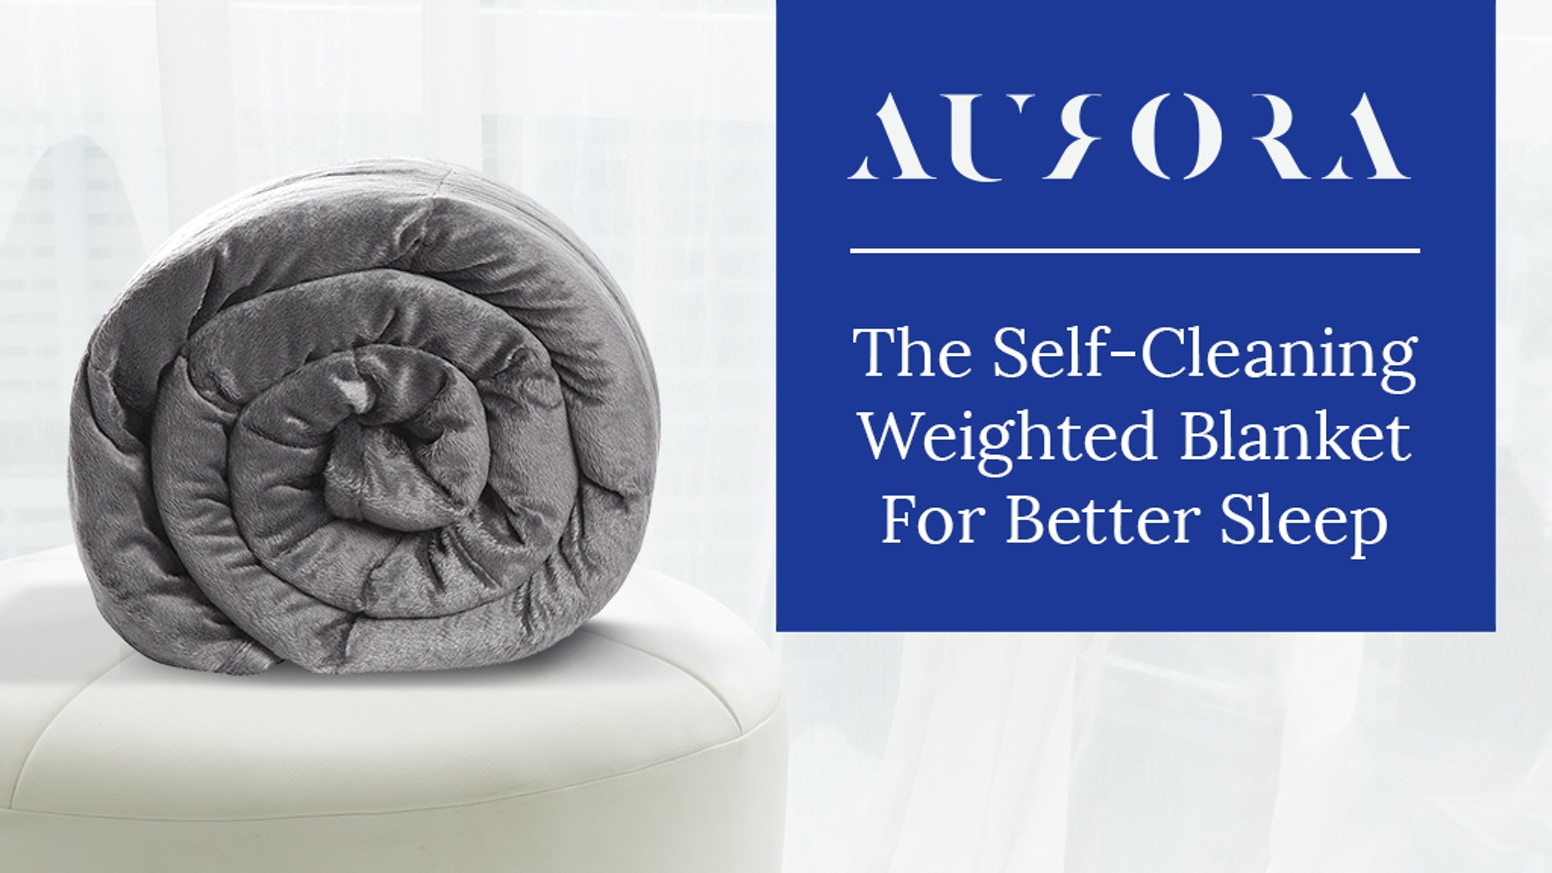 Snuggle the stress away while copper-infused fabrics cleanses. PRE-ORDERS AVAILABLE NOW ON www.aurorablanket.com!